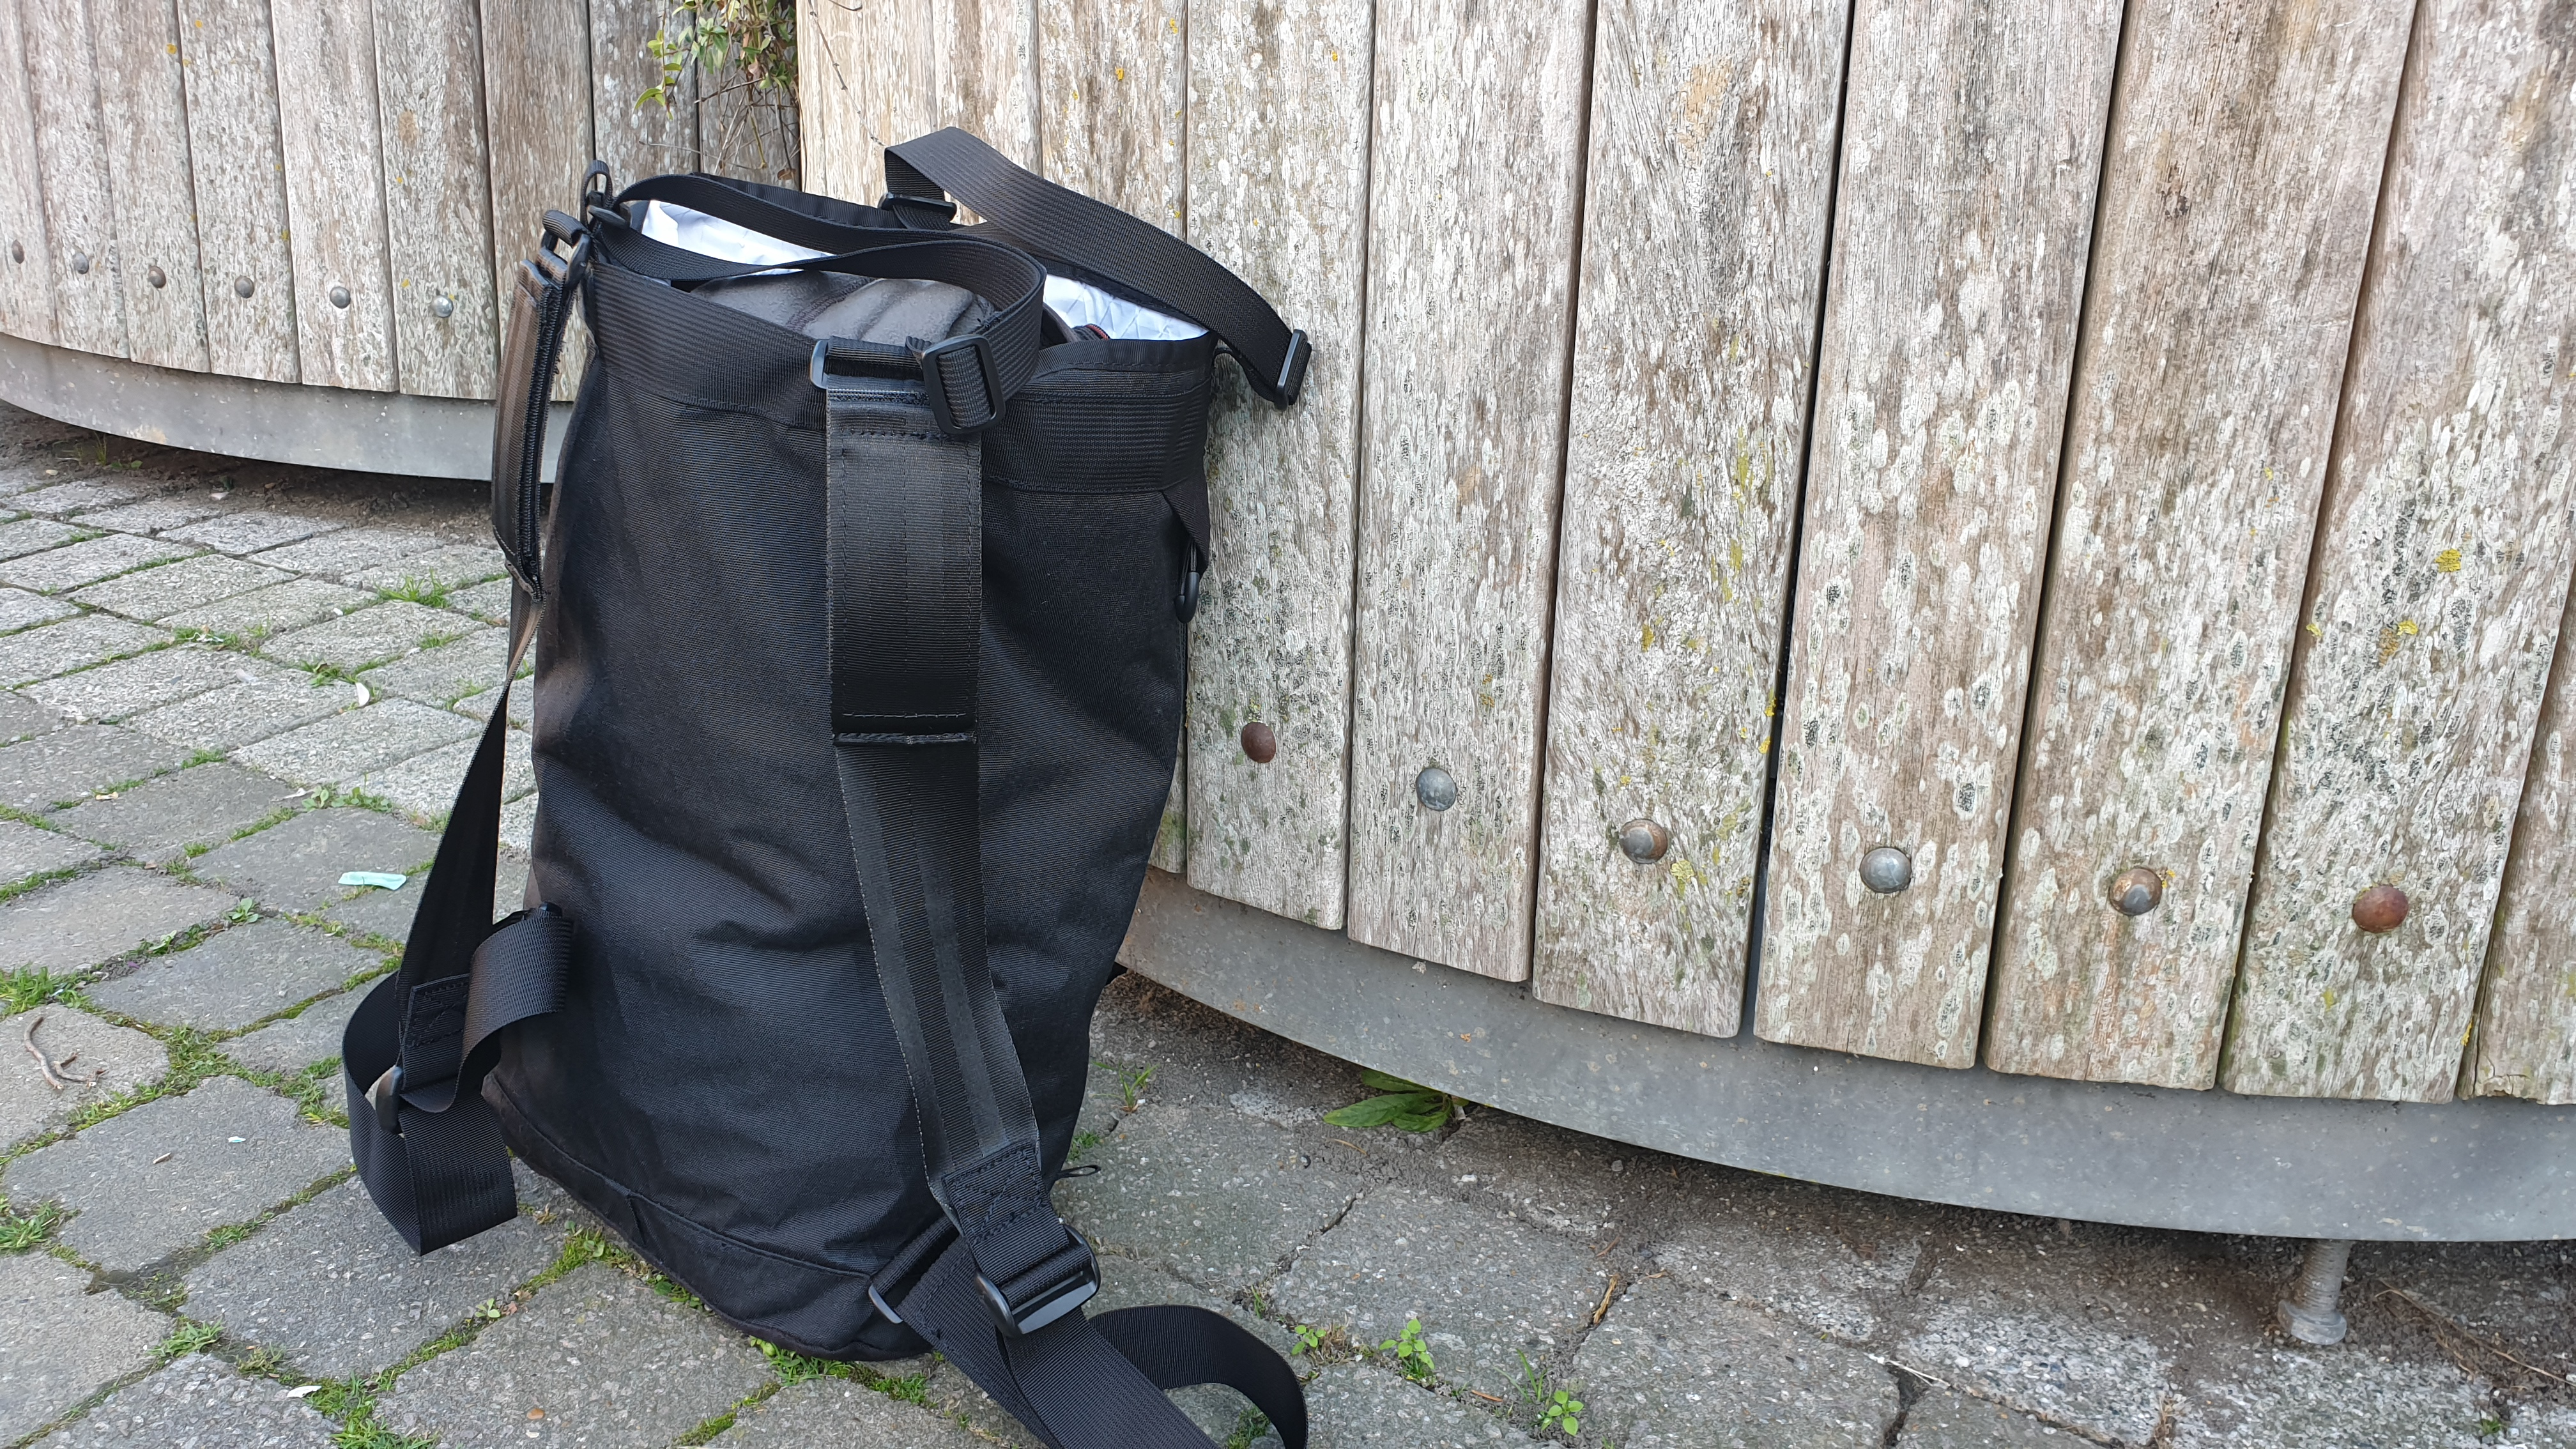 Remote Equipment Bravo 18 backpack hauler review straps back panel view